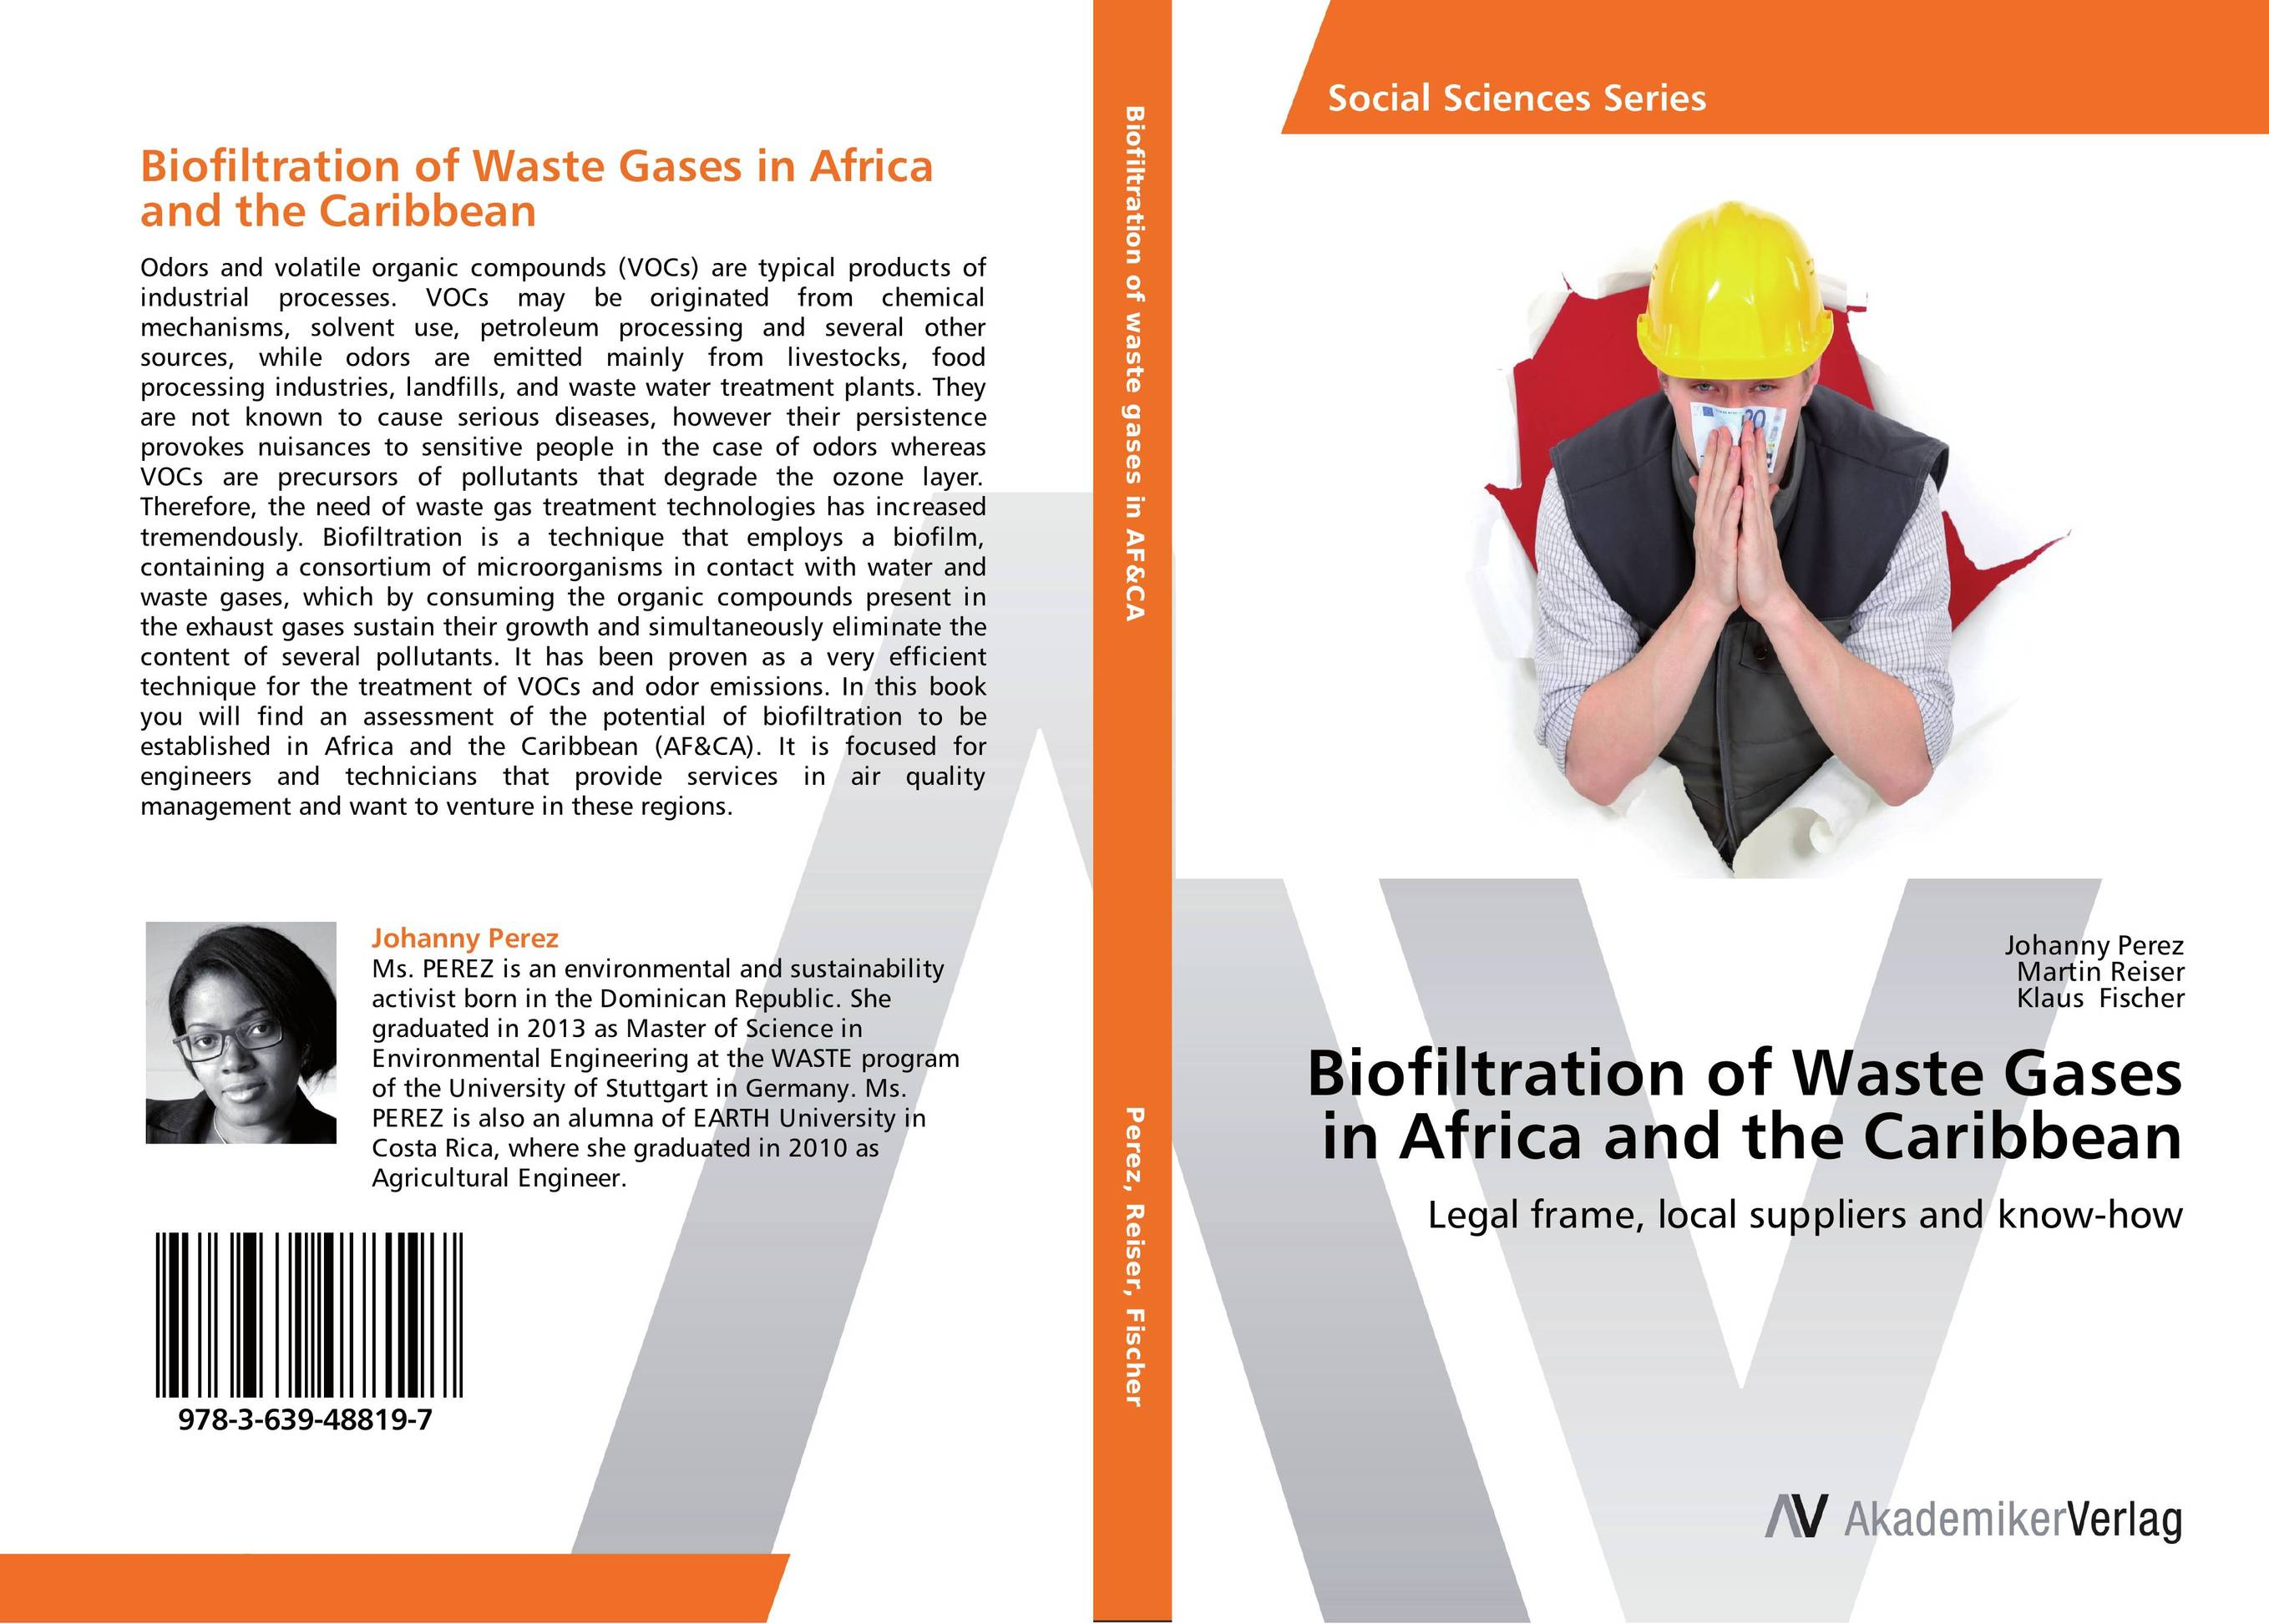 Biofiltration of Waste Gases in Africa and the Caribbean mobile waste processing systems and treatment technologies